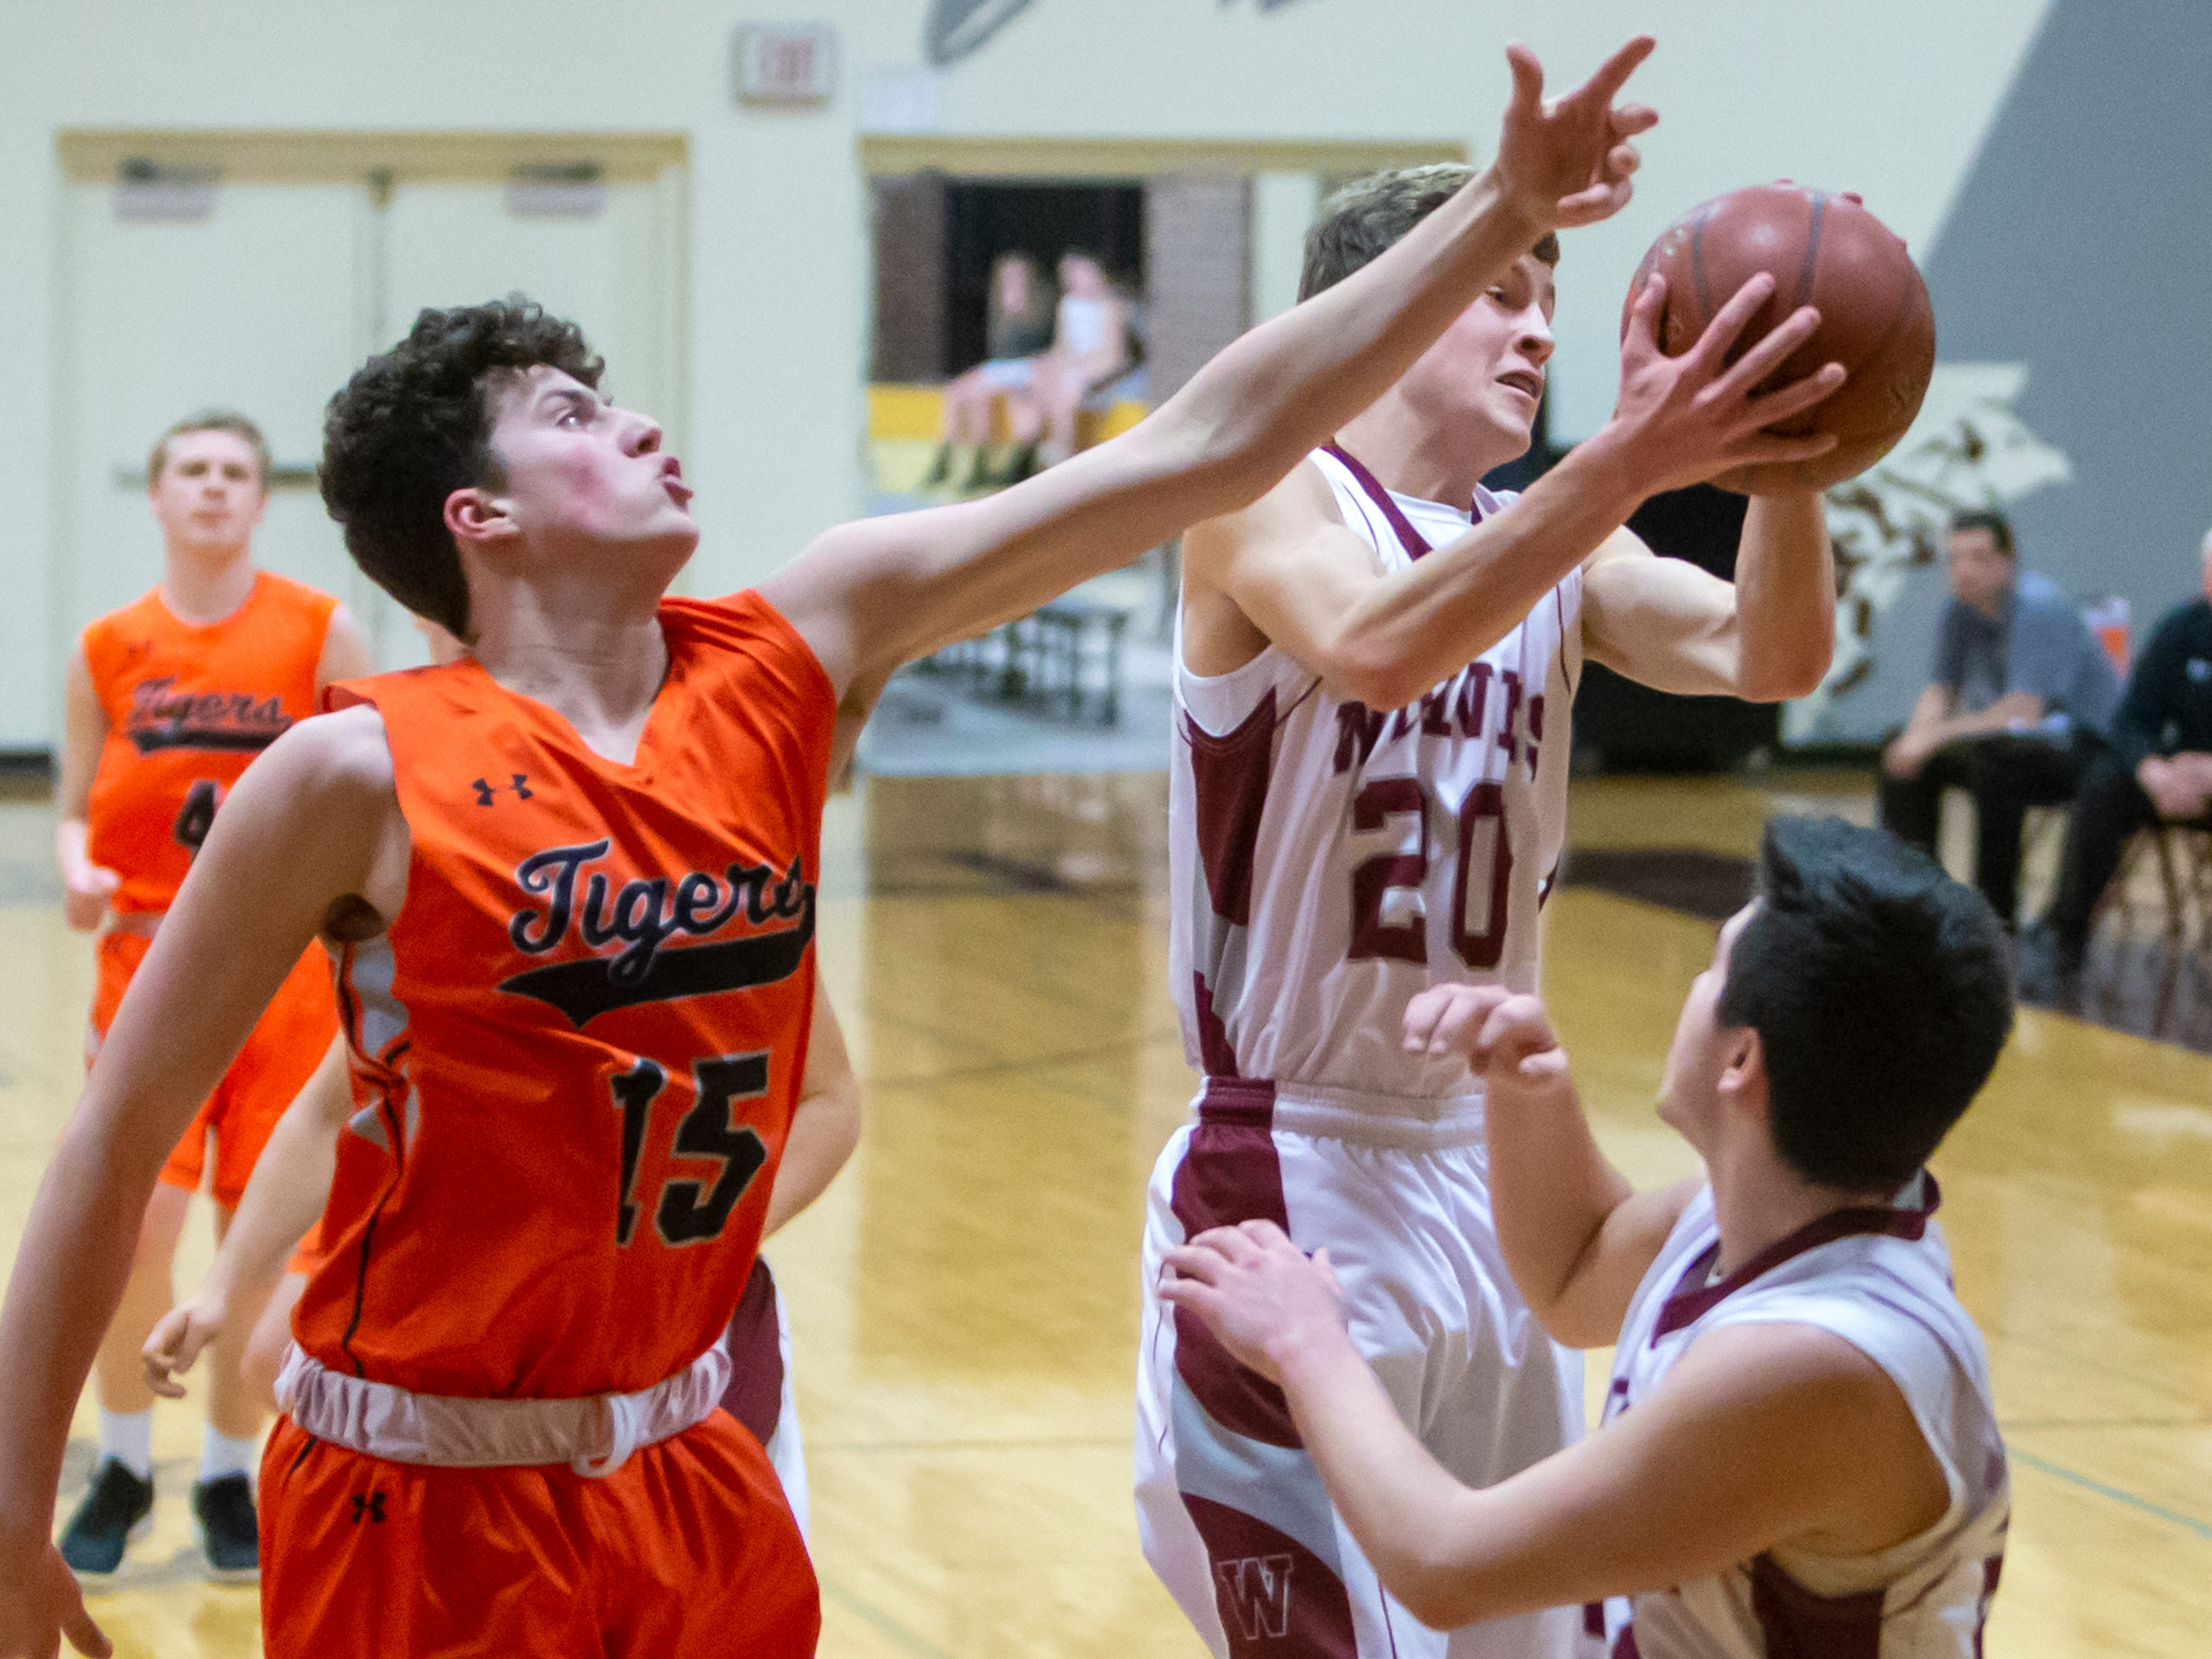 Winneconne's Trenton Hanseder comes down with a rebound at Winneconne High School on Thursday, January 24, 2019.